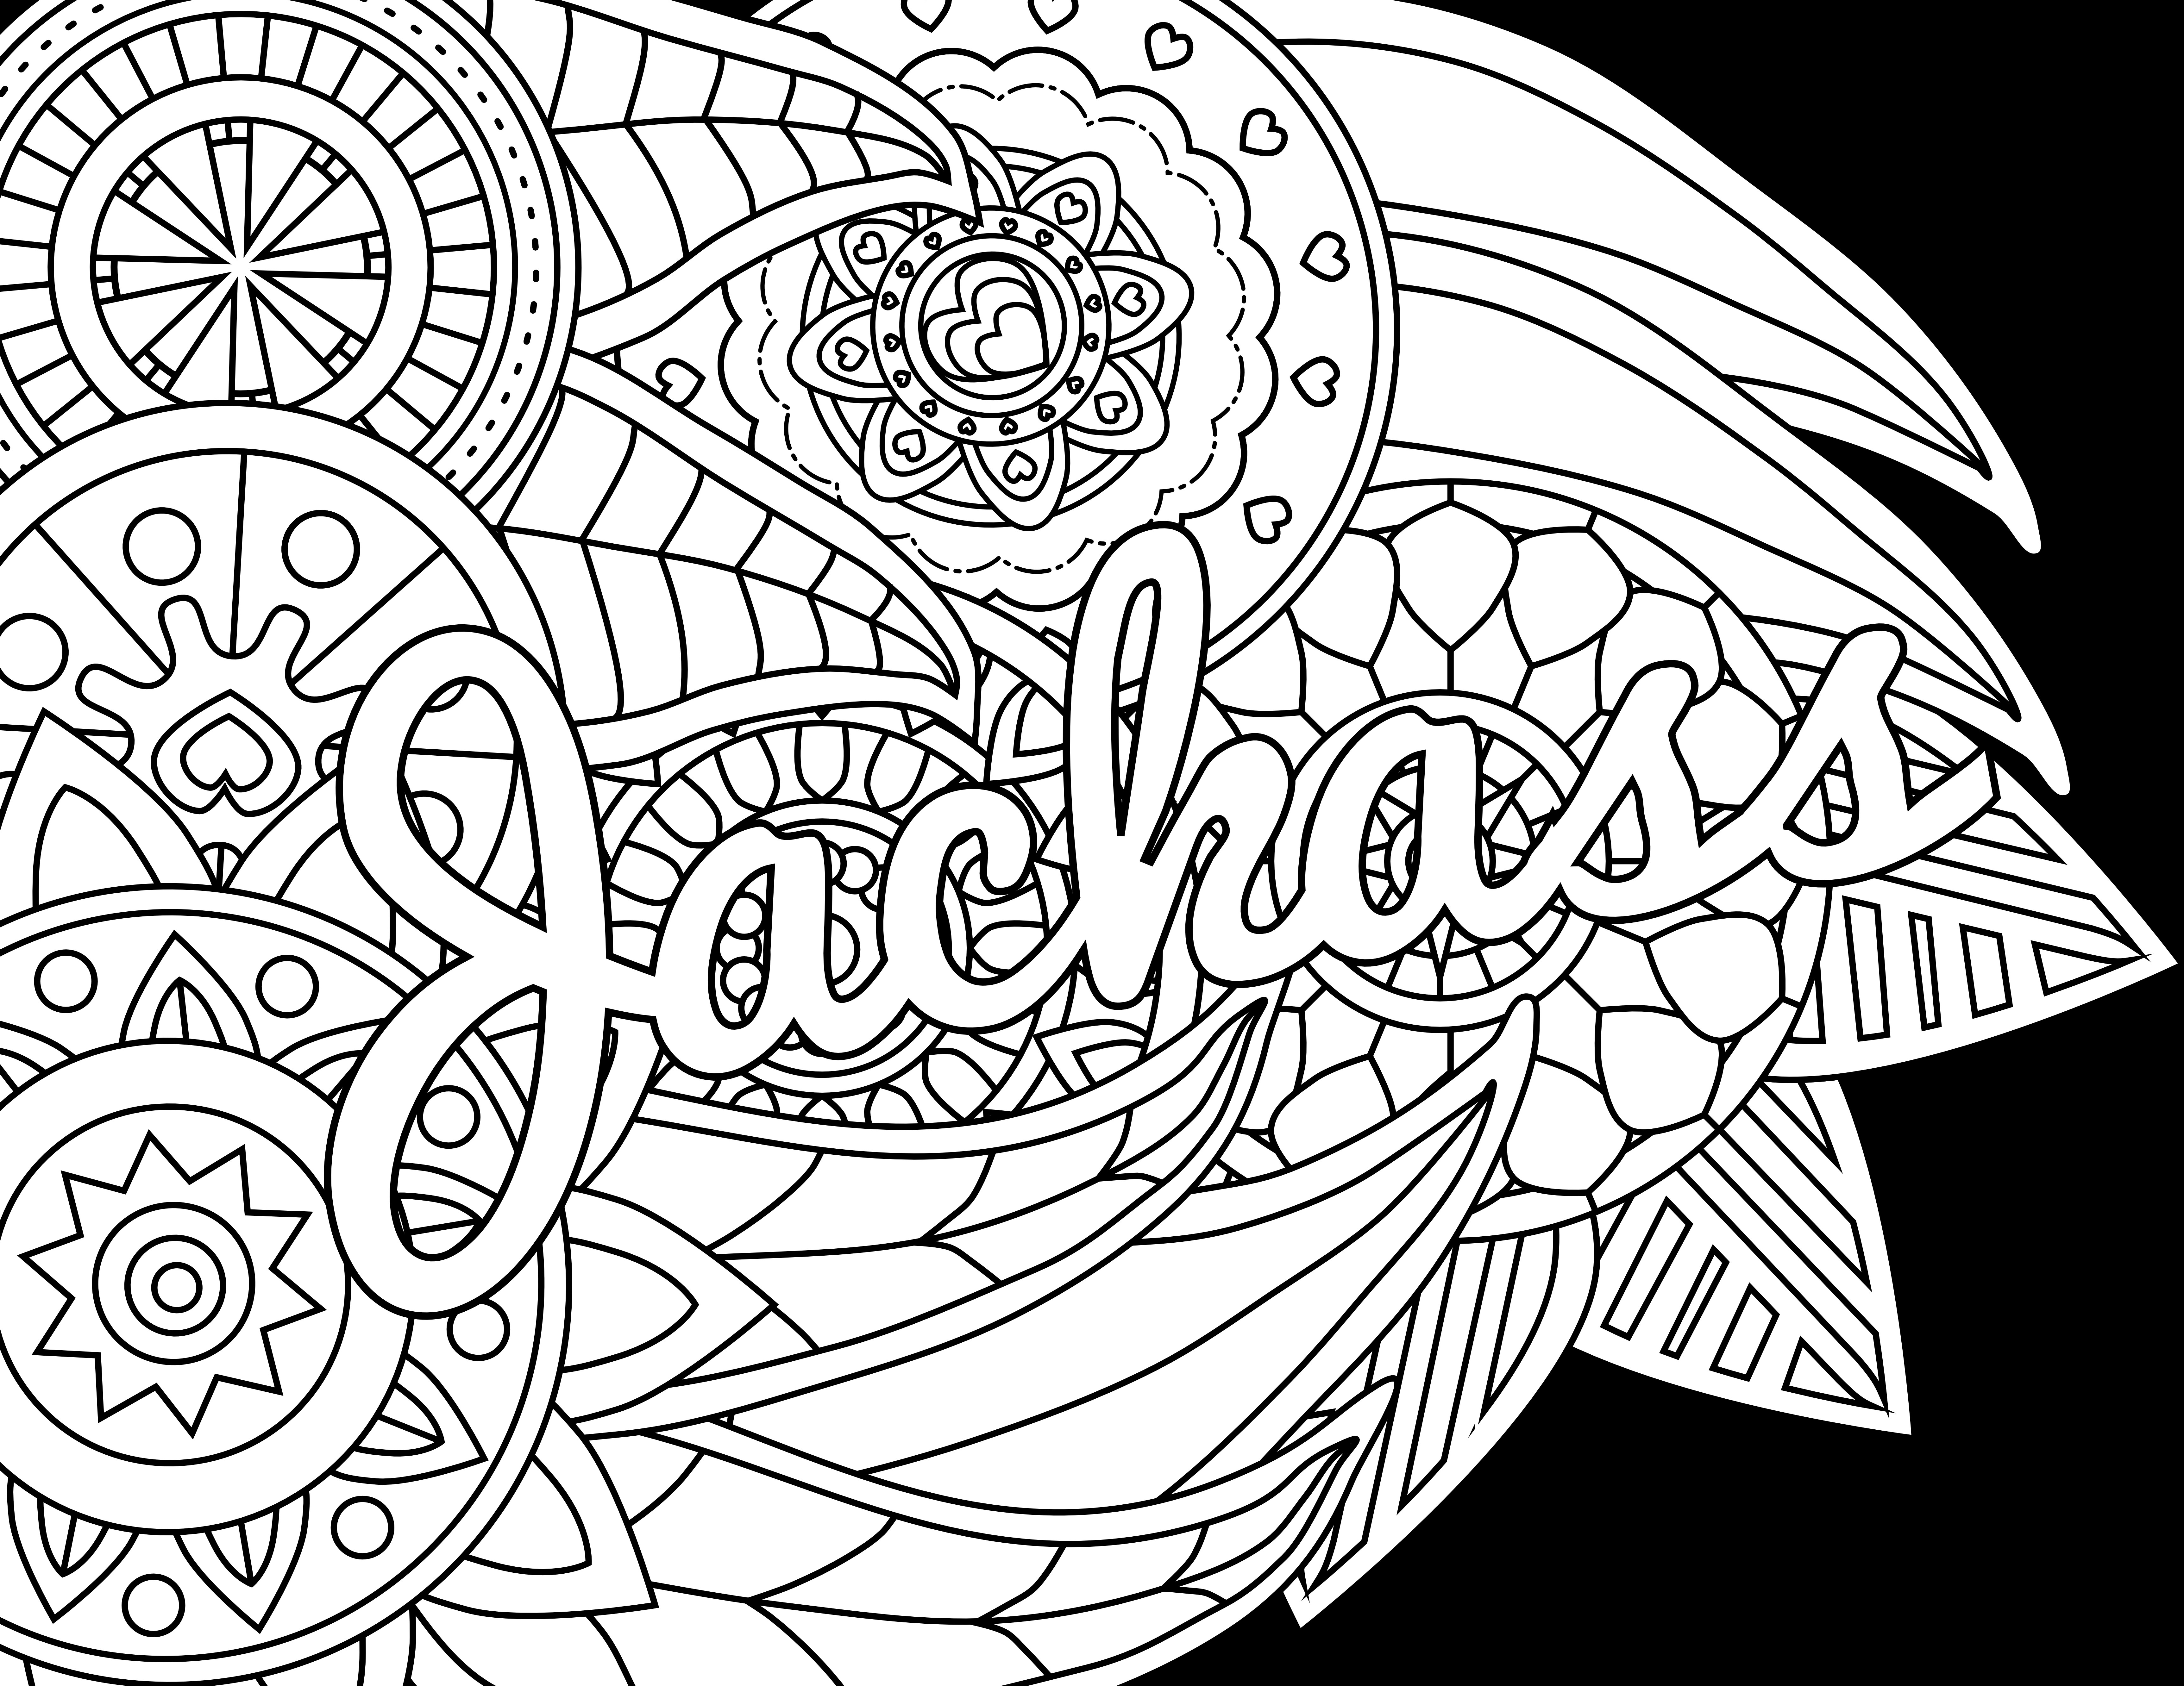 Free Printable Coloring Pages For Adults Only Swear Words  Jackass Adult Coloring Page Color & Swear Blackout